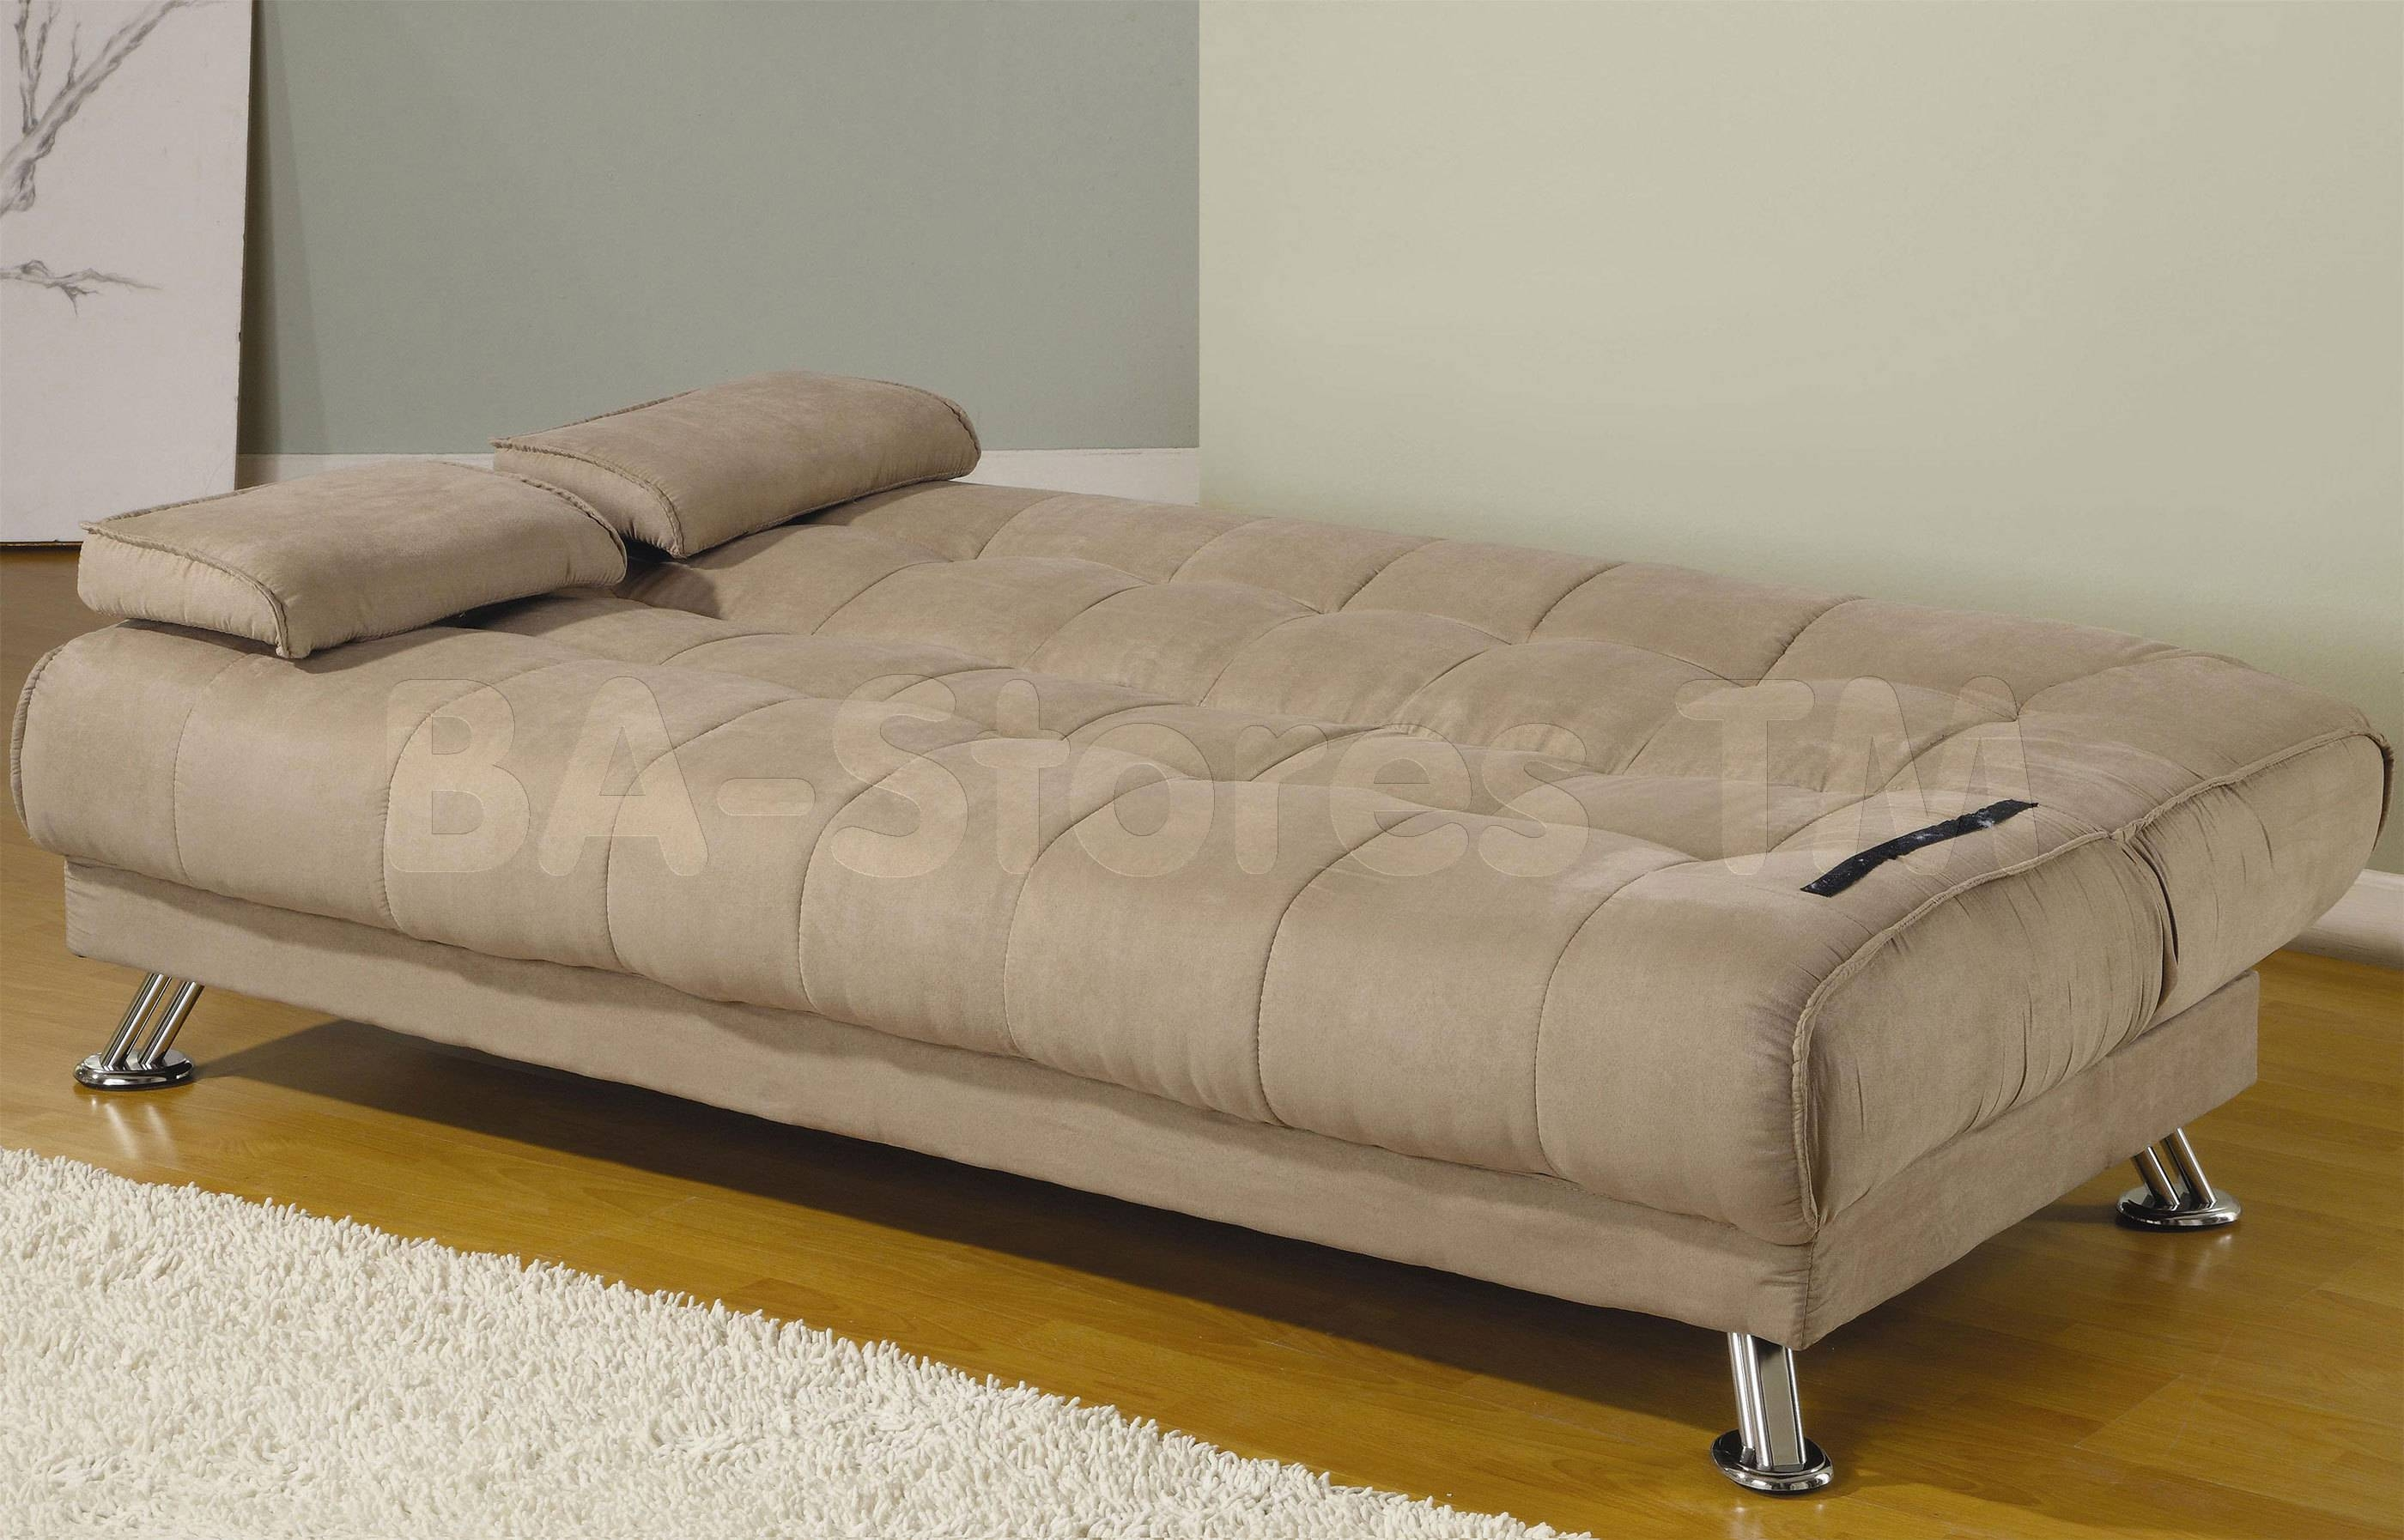 Sofas: Striking Cheap Sofa Sleepers For Small Living Spaces pertaining to Comfort Sleeper Sofas (Image 29 of 30)